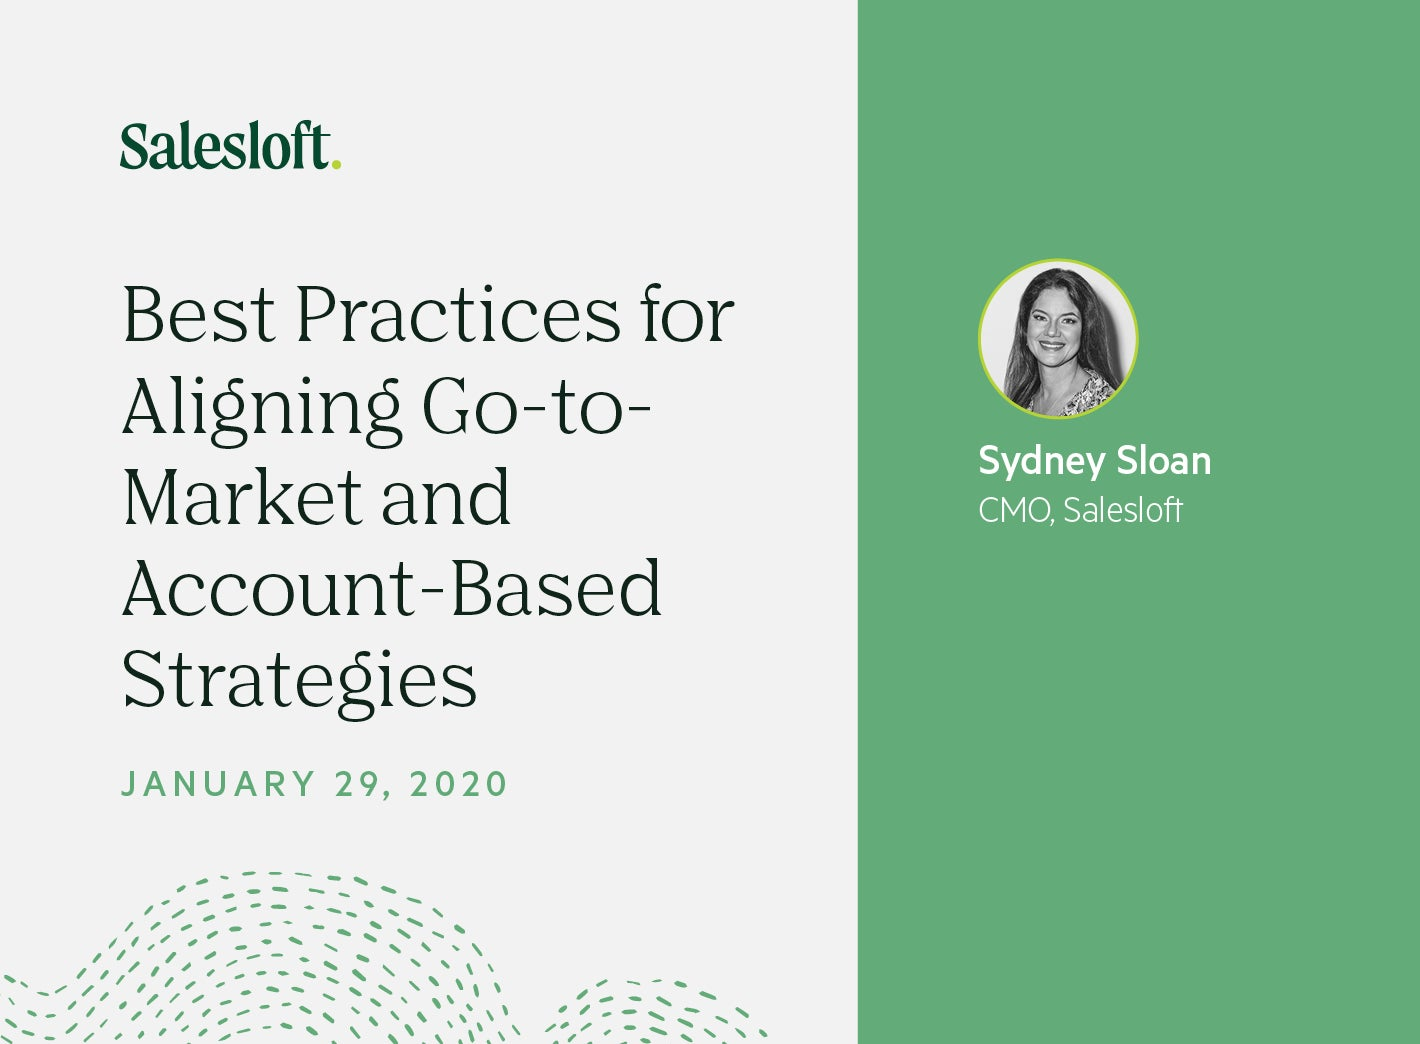 Best Practices for Aligning Go-to-Market and Account-Based Strategies